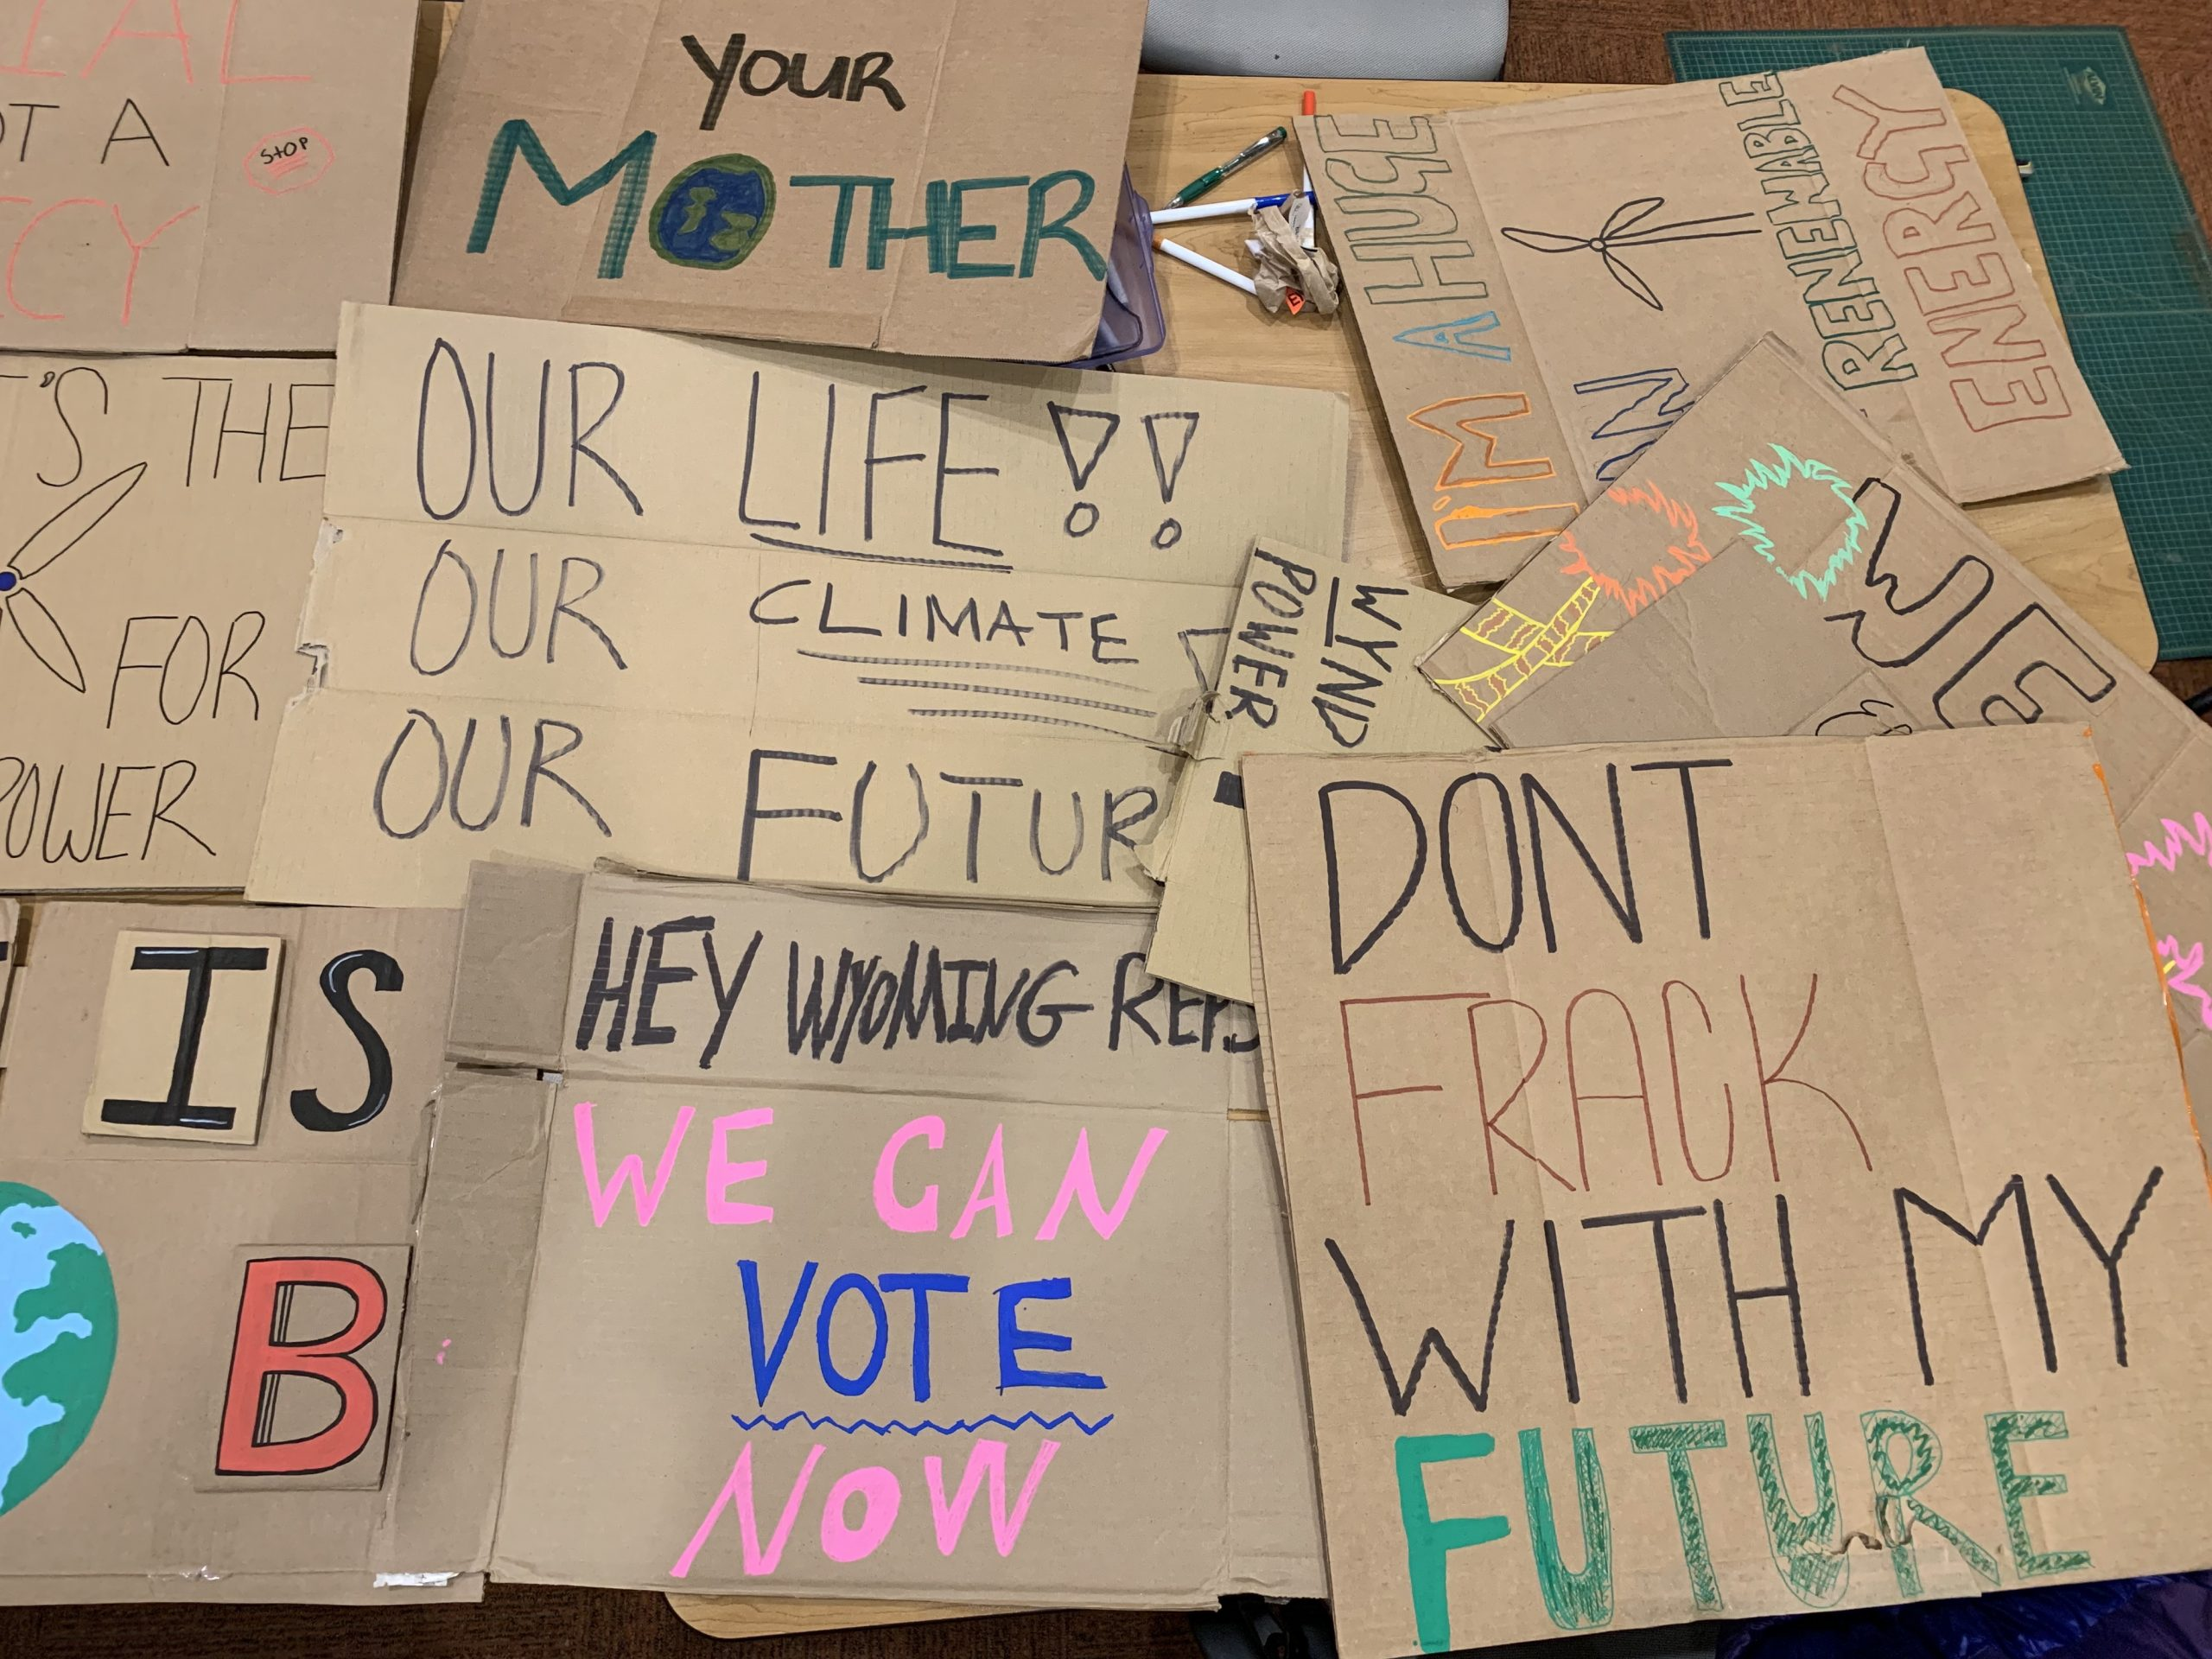 Signs for the strike made by Sienna Taylor and her classmates of Jackson Hole, Wyoming